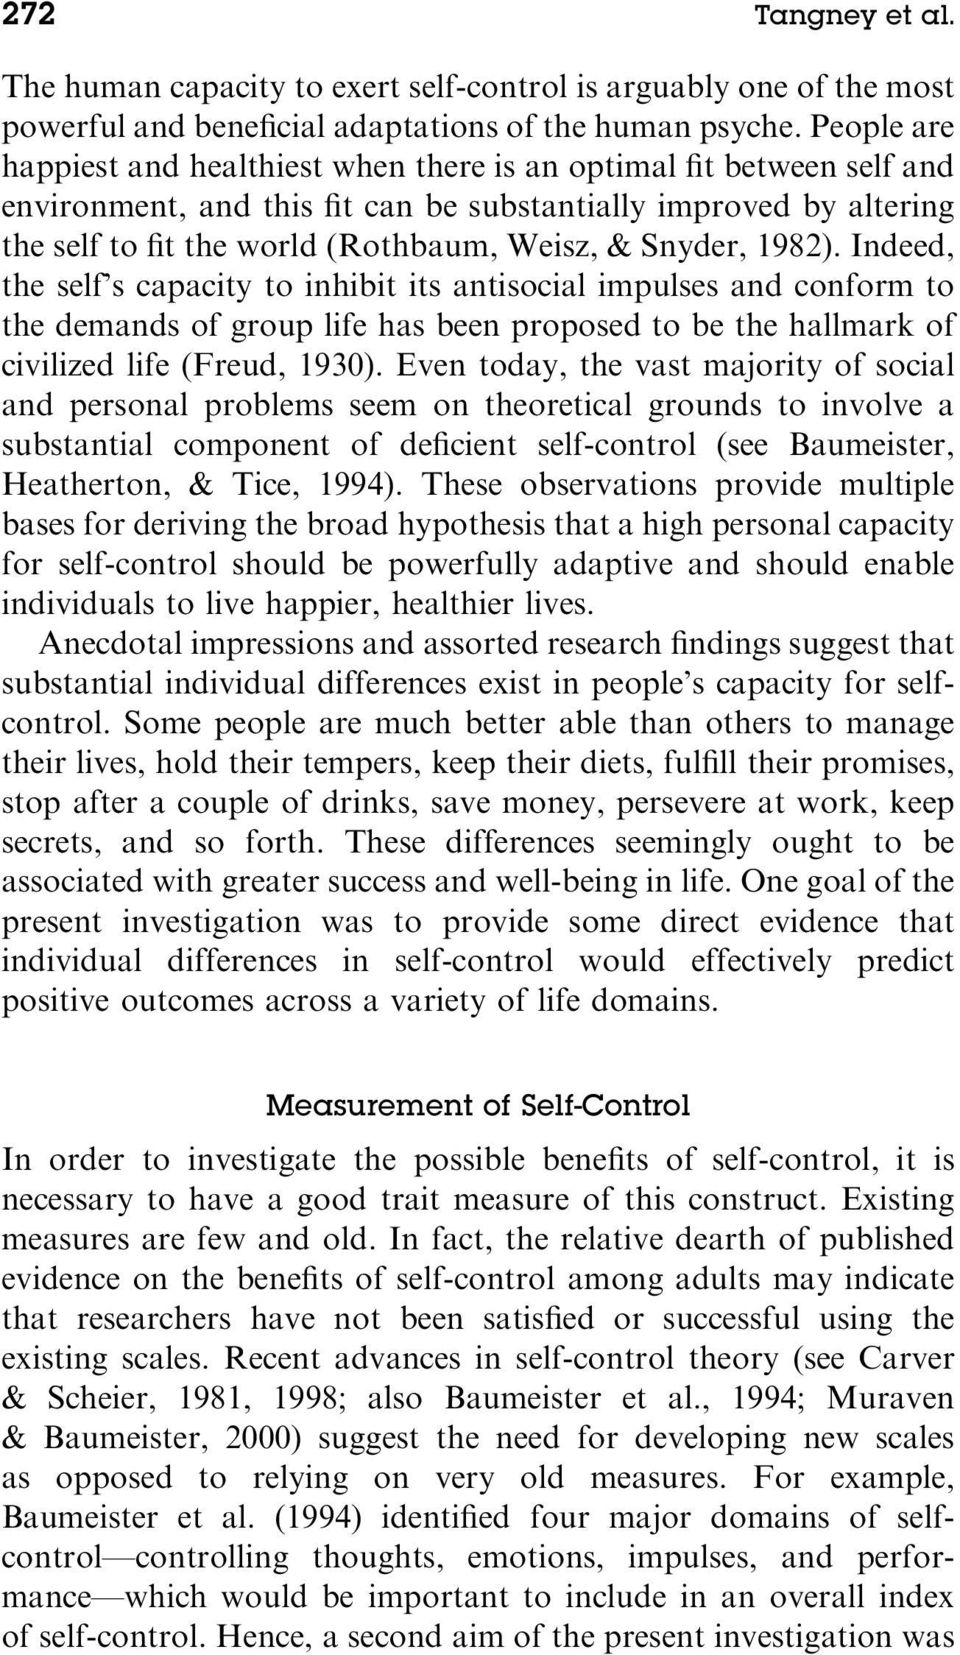 Snyder, 1982). Indeed, the self s capacity to inhibit its antisocial impulses and conform to the demands of group life has been proposed to be the hallmark of civilized life (Freud, 1930).